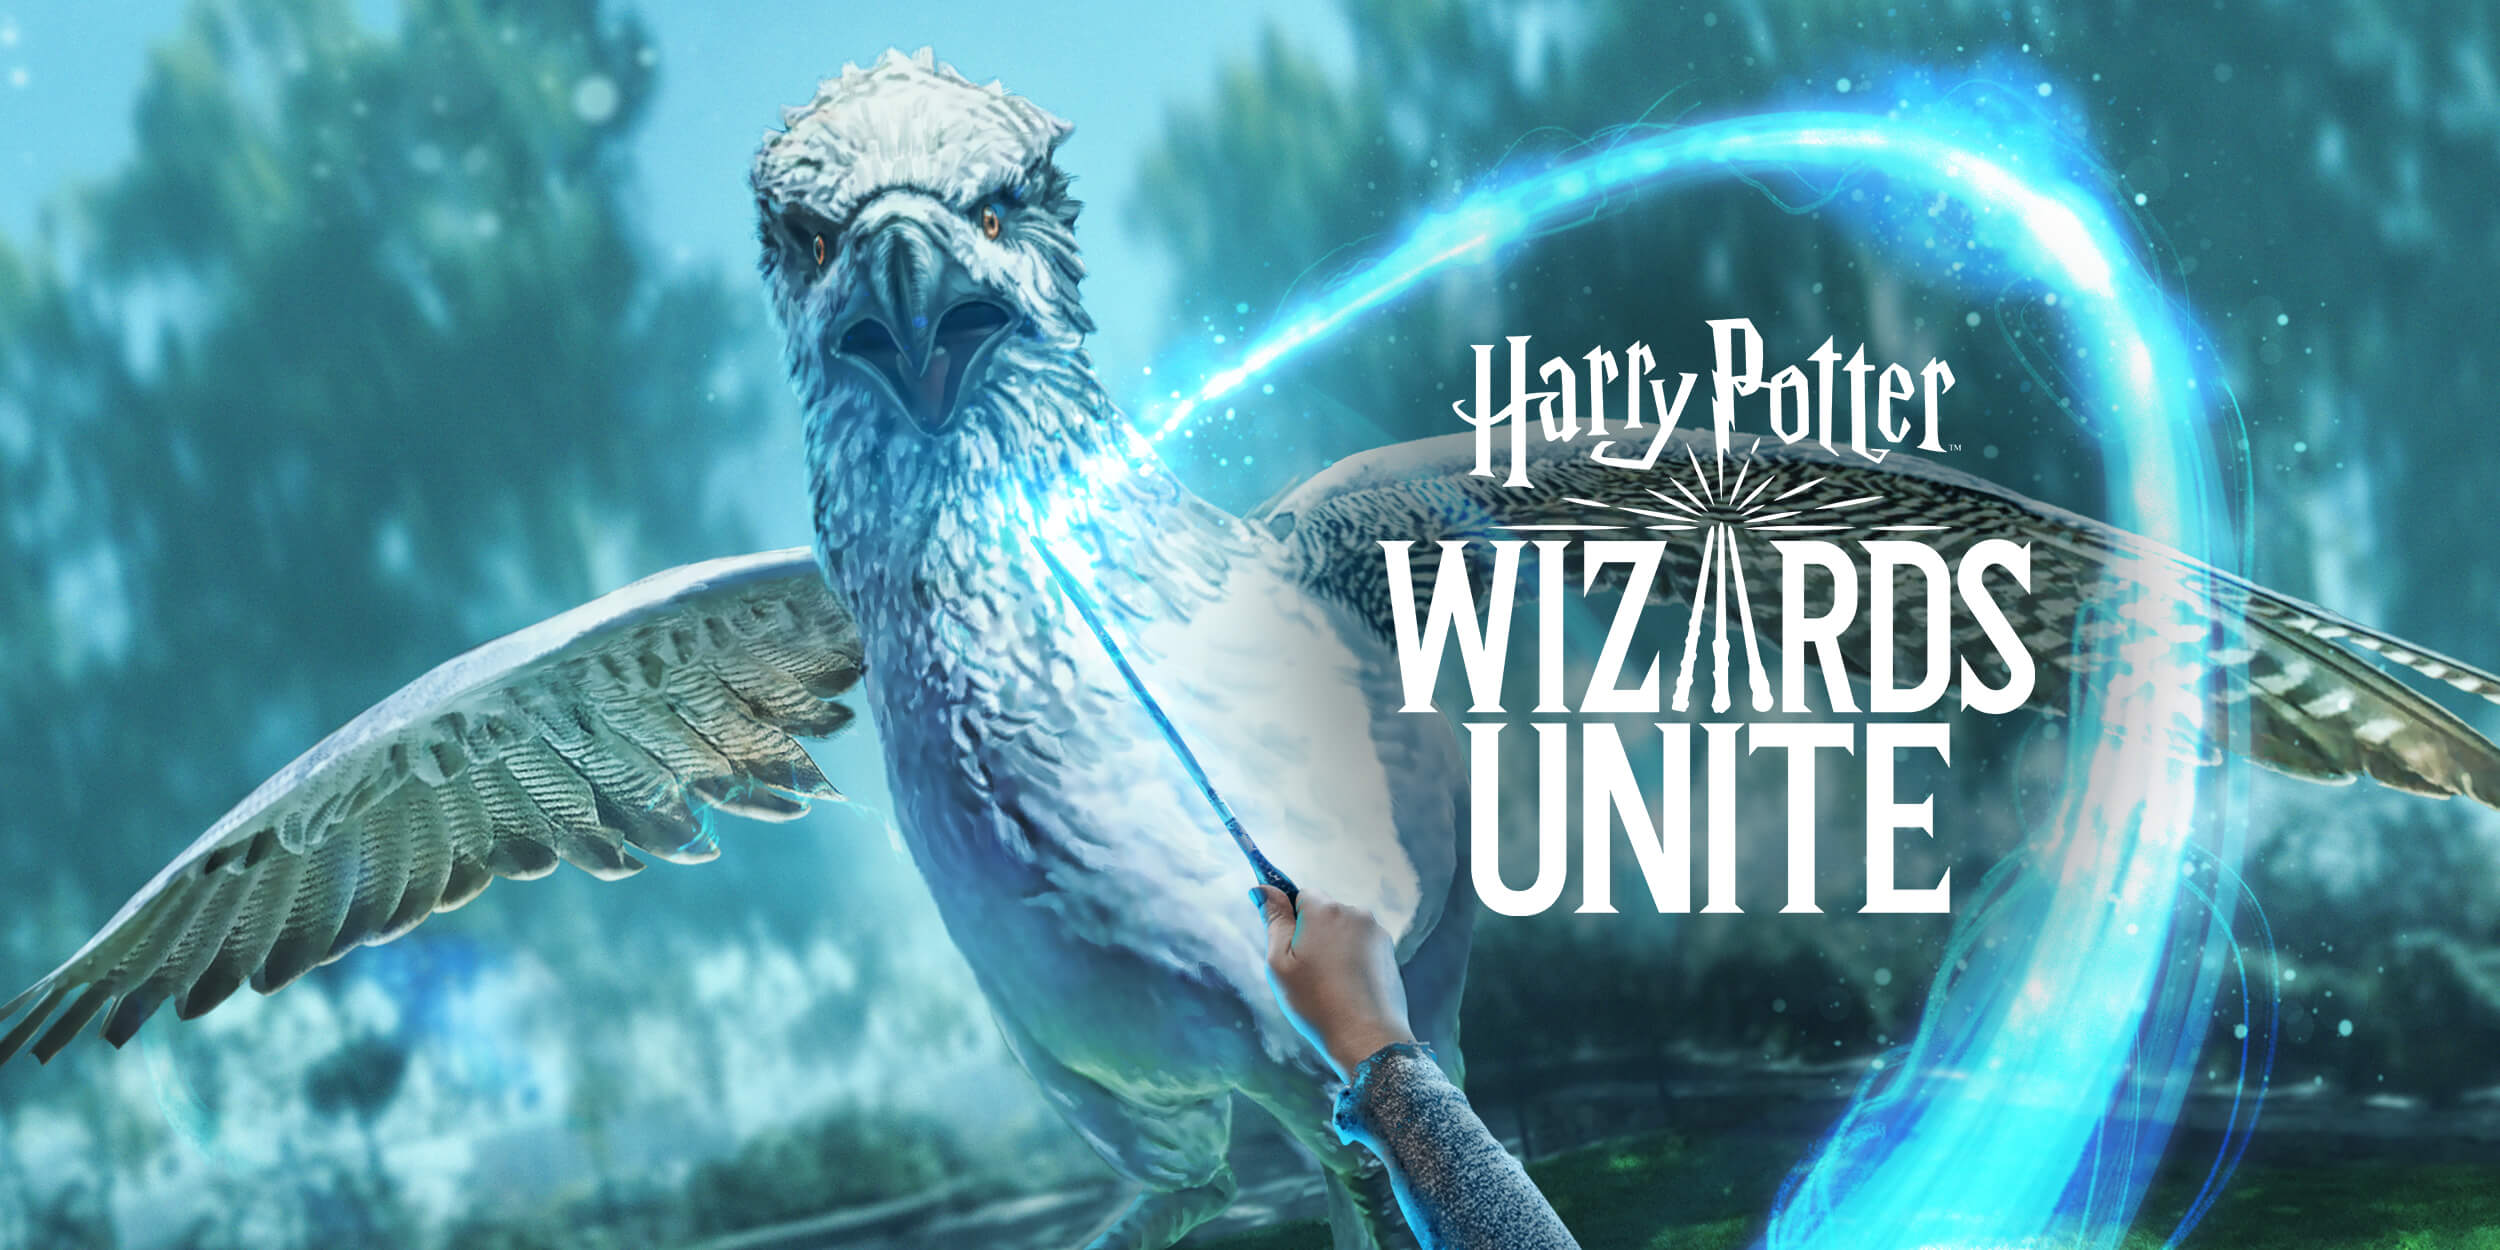 Harry Potter: Wizards Unite lets fans cast spells and rescue magic creatures